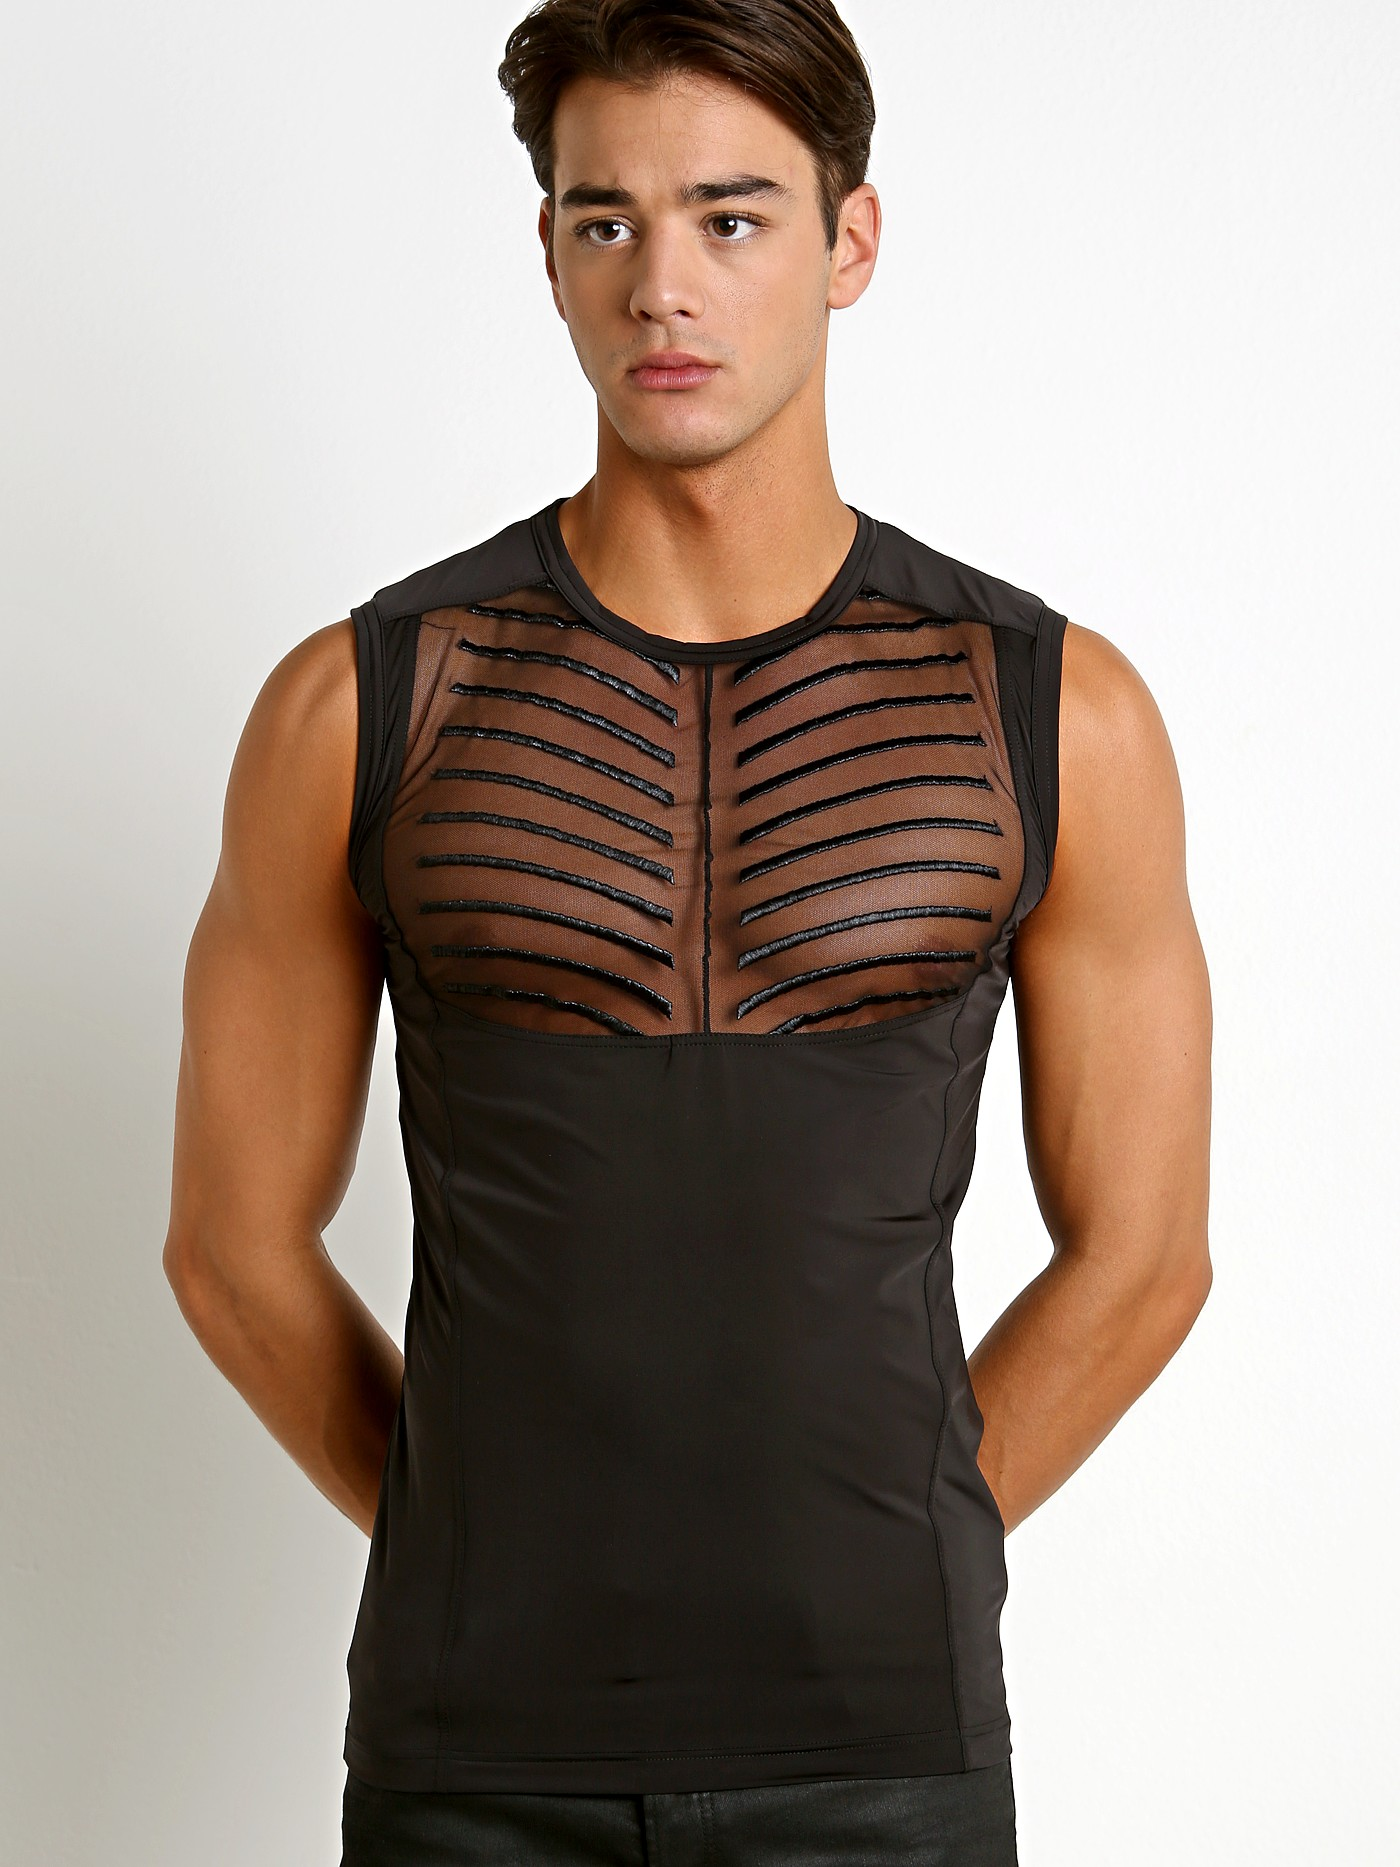 054f665a Gregg Homme Soiree Microfiber Mesh Muscle Shirt Black 150122 at  International Jock